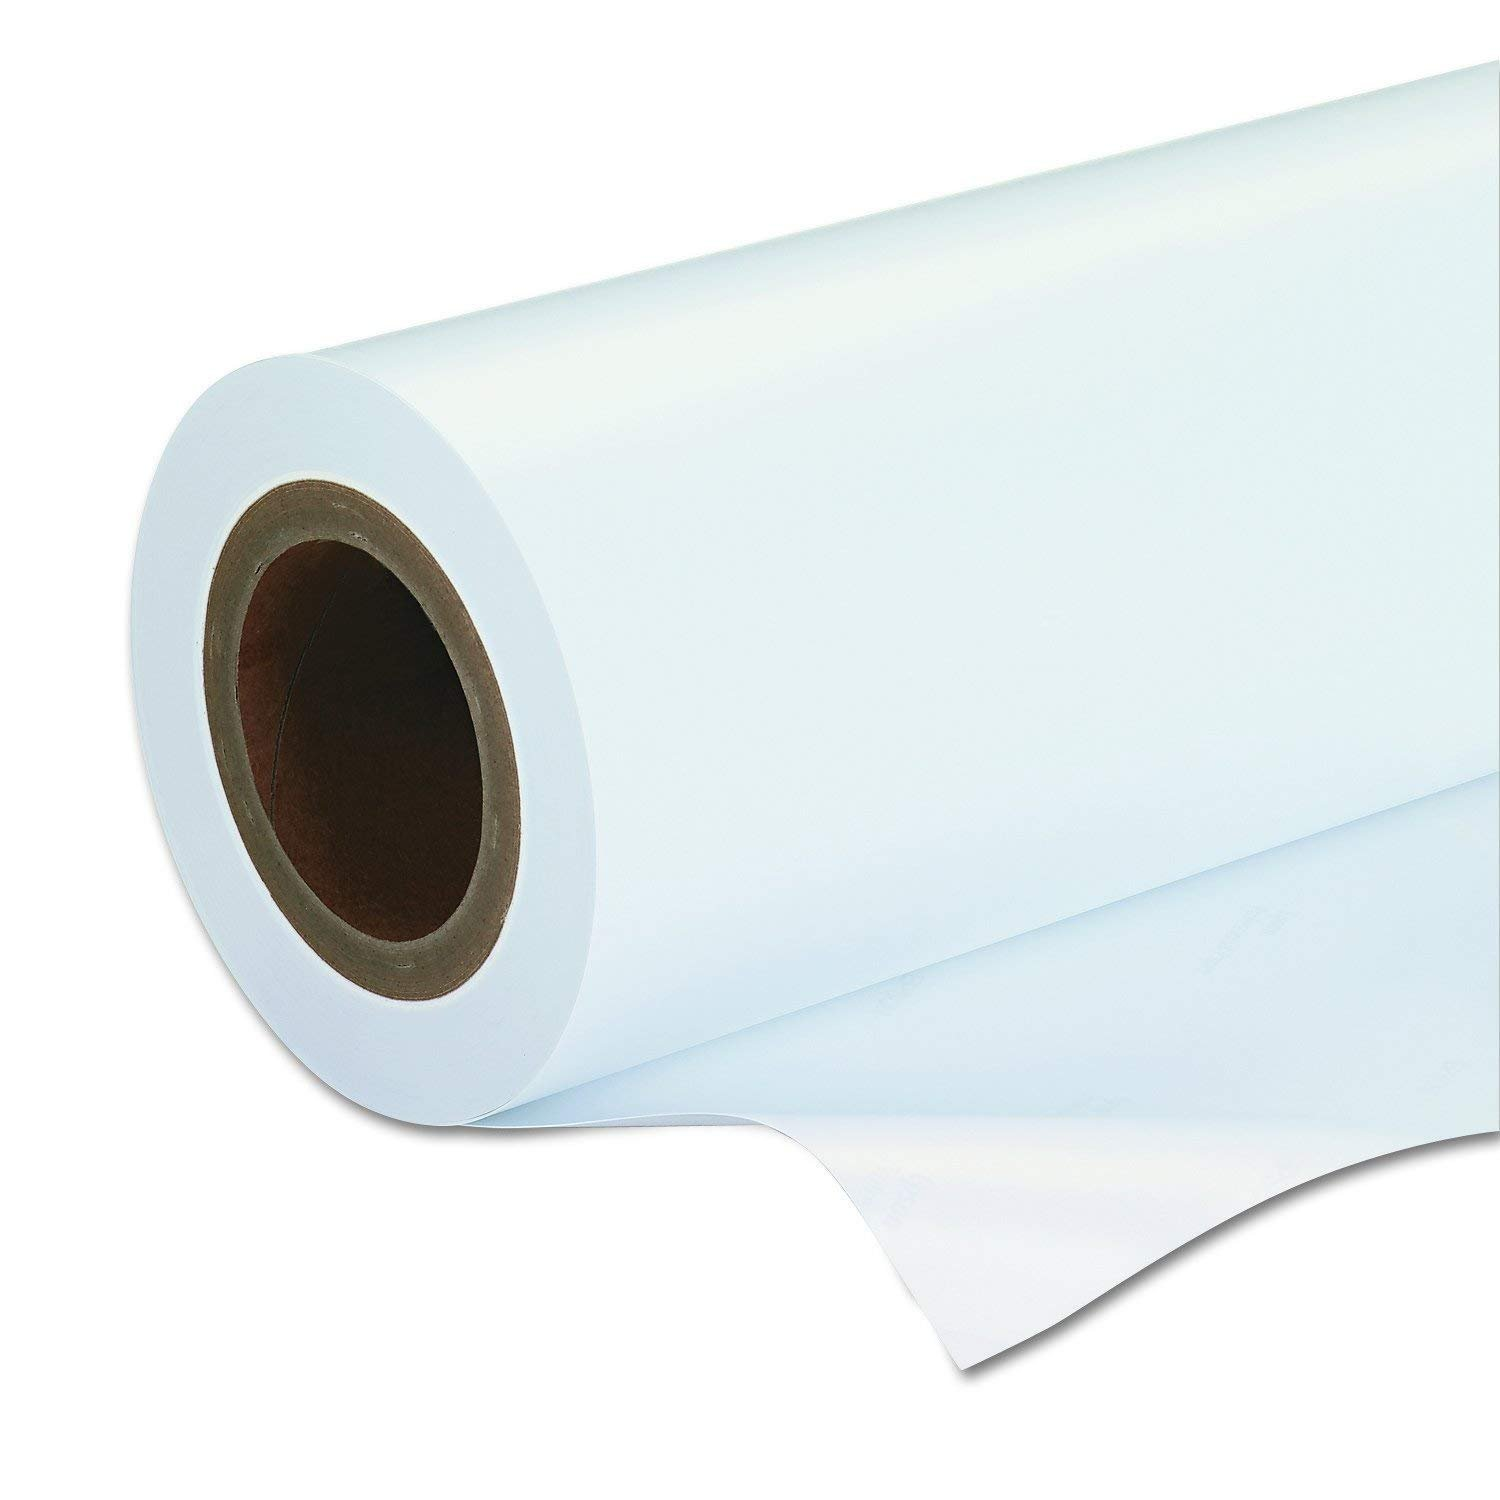 24in X 82ft Double Weight Matte Paper F/Sp Plotters Epson - Supplies Paper S041385 IESS041385 Office Supplies